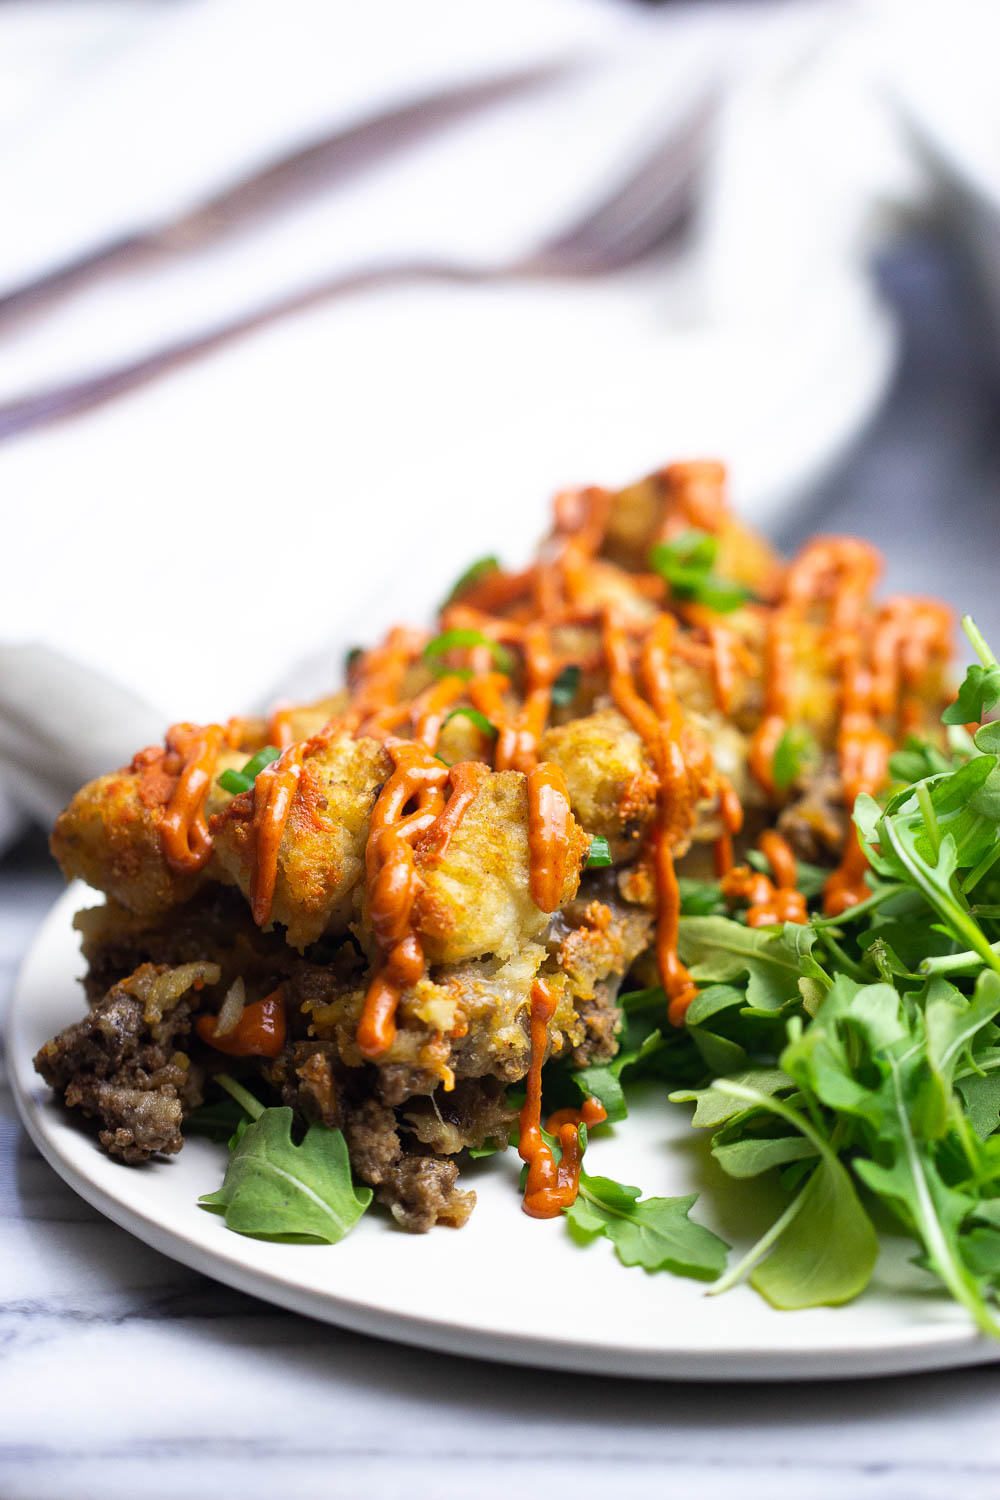 Savory, delicious, and healthier Bulgogi Casserole is an easy dinnertime recipe that everyone will love. It is made with simple ingredients and the ultimate comfort food. Plus, you can enjoy this for brunch, too!